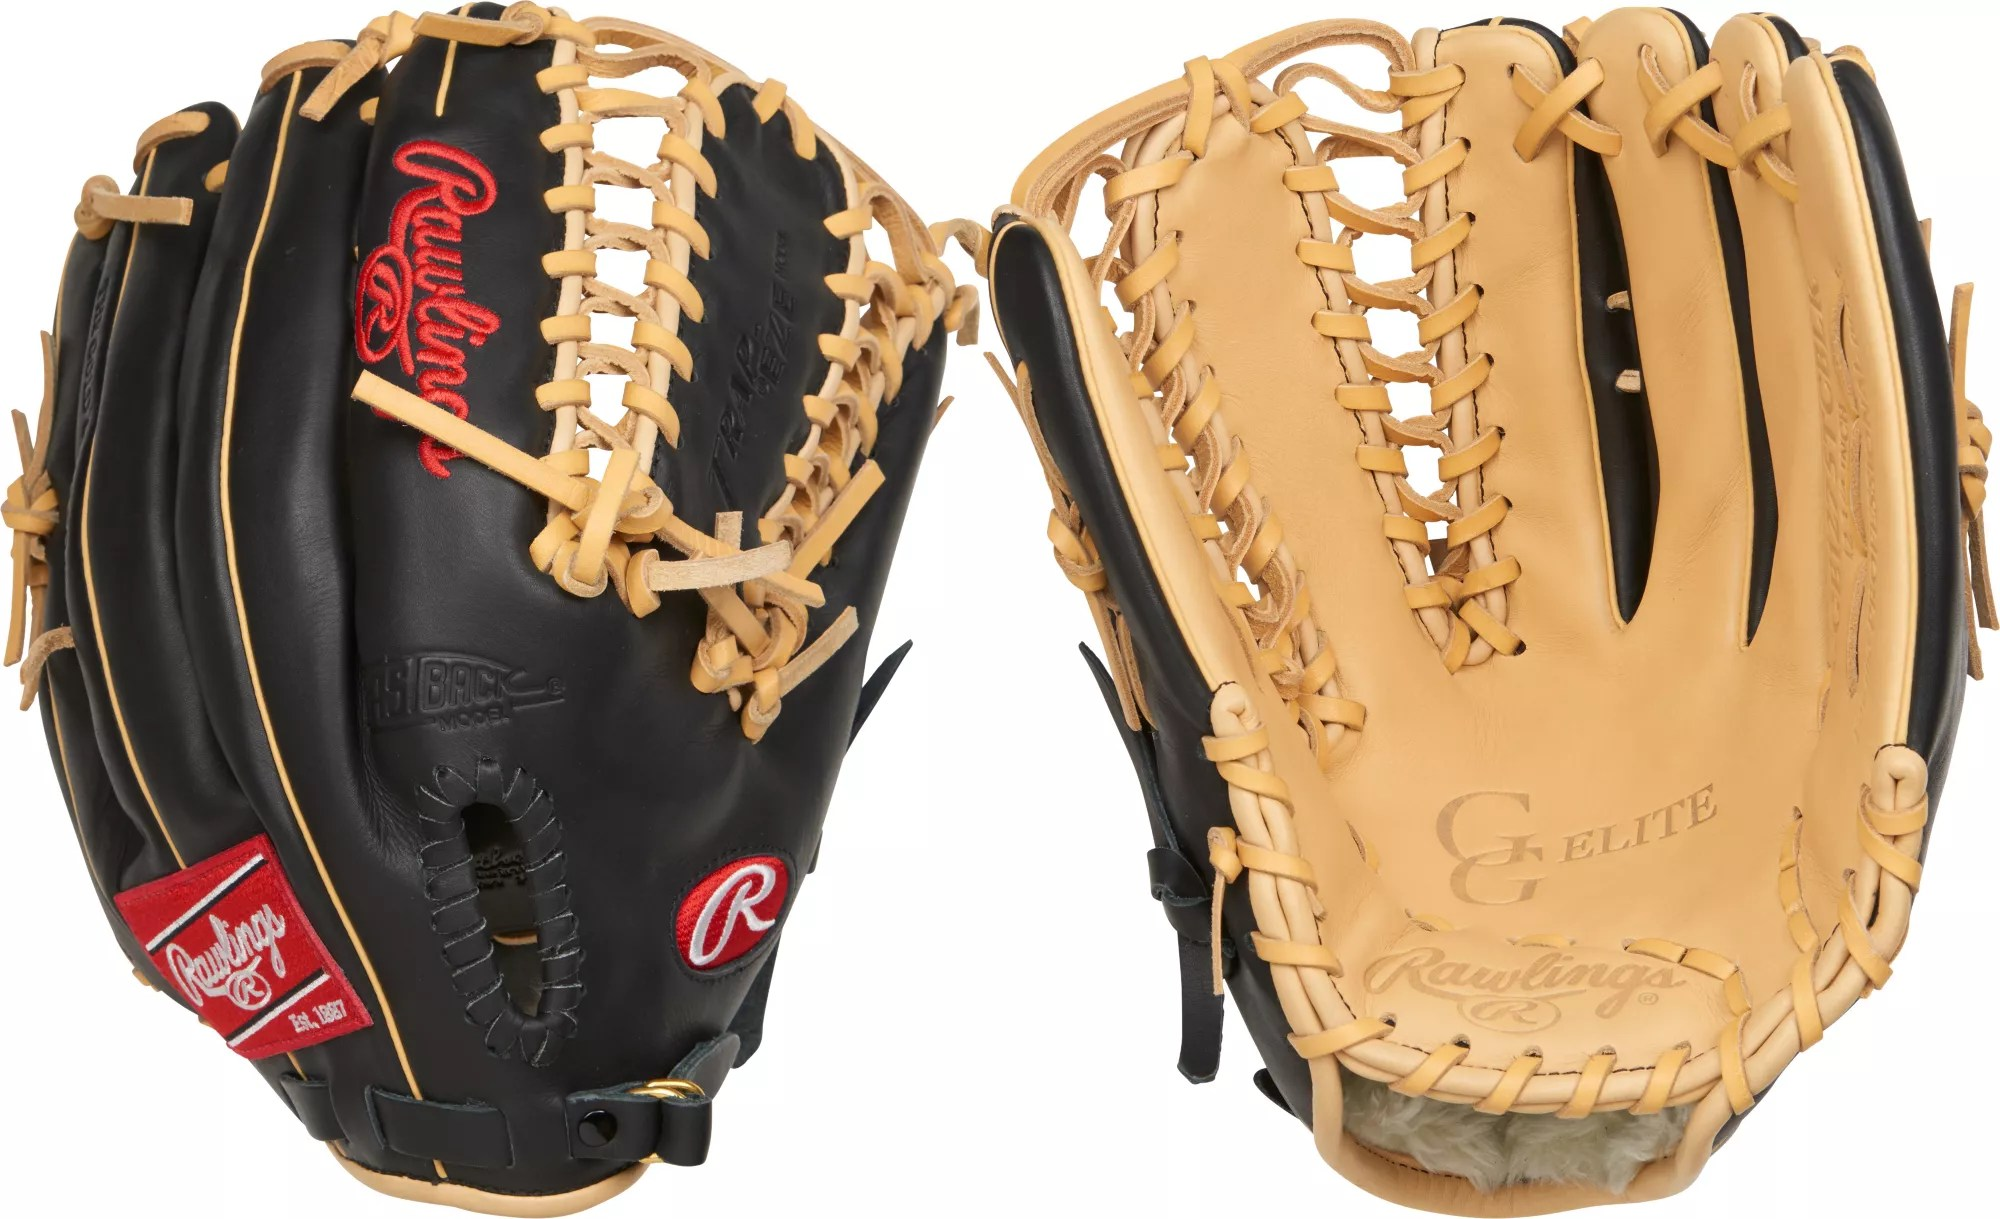 baseball glove chair home goods steel hs code rawlings 12 75 39 gg elite series dick 39s sporting